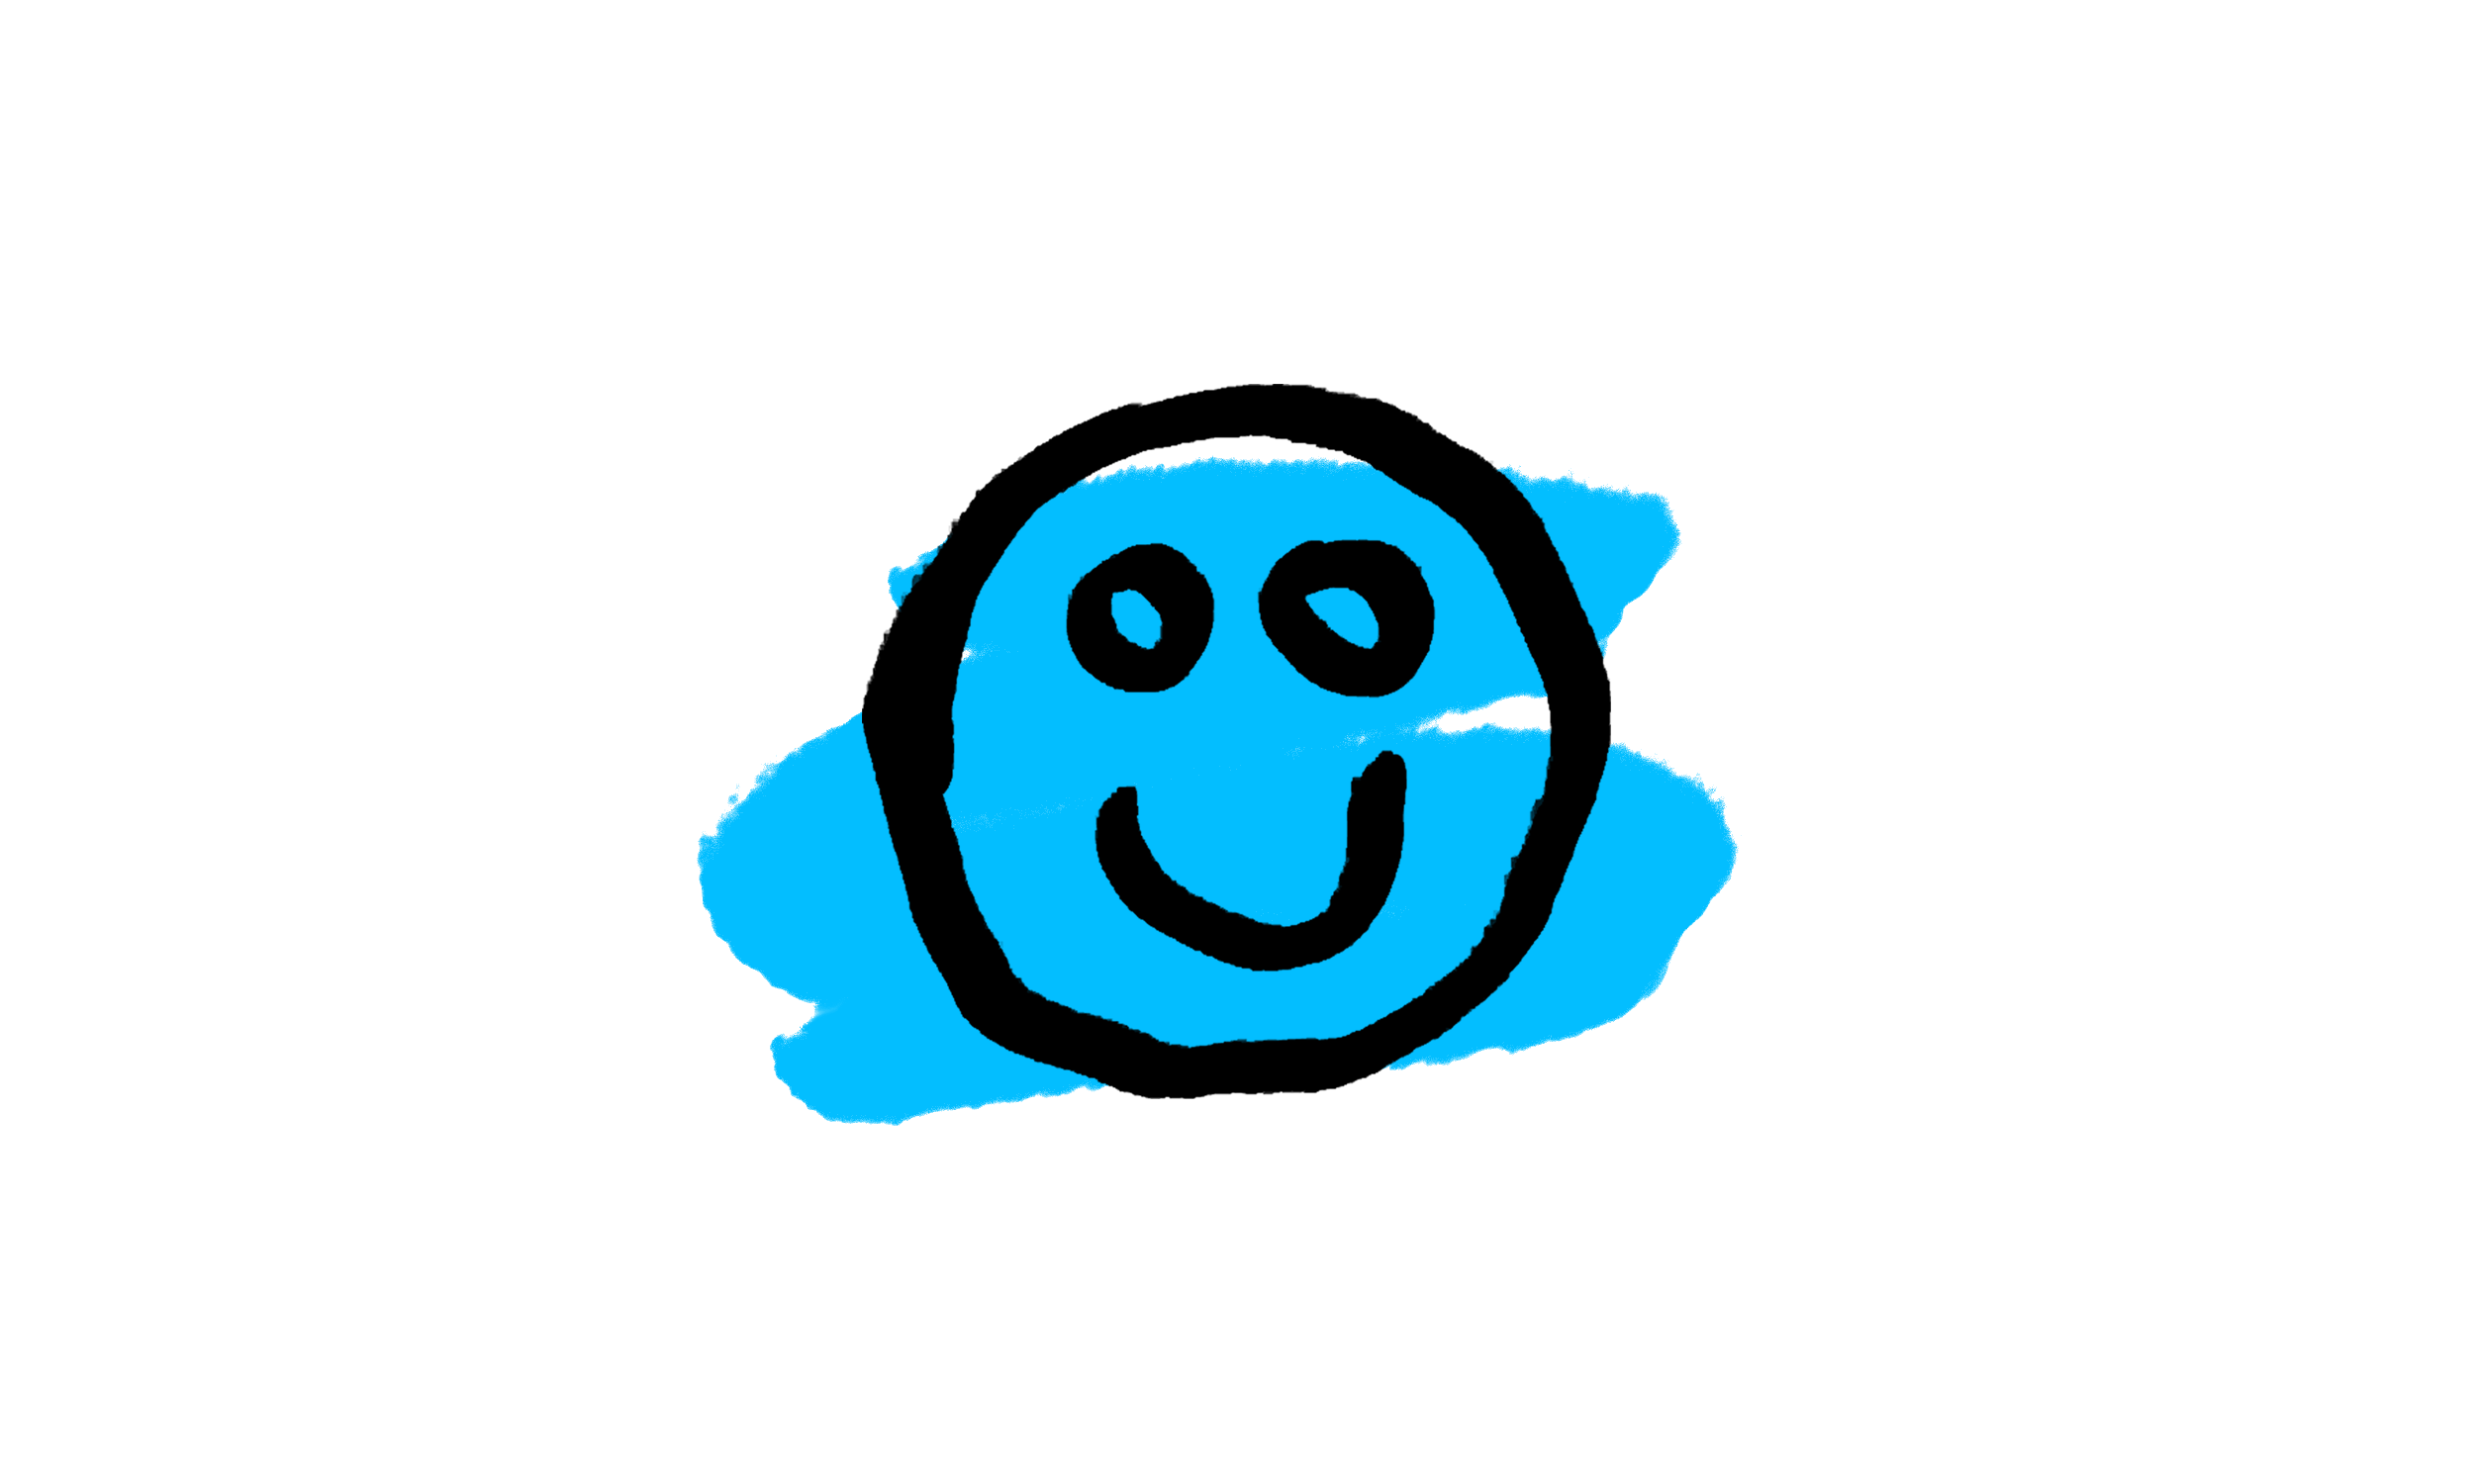 ProjectPose_WEBSITE_Icons_Brush_withColor_Smile_01.png